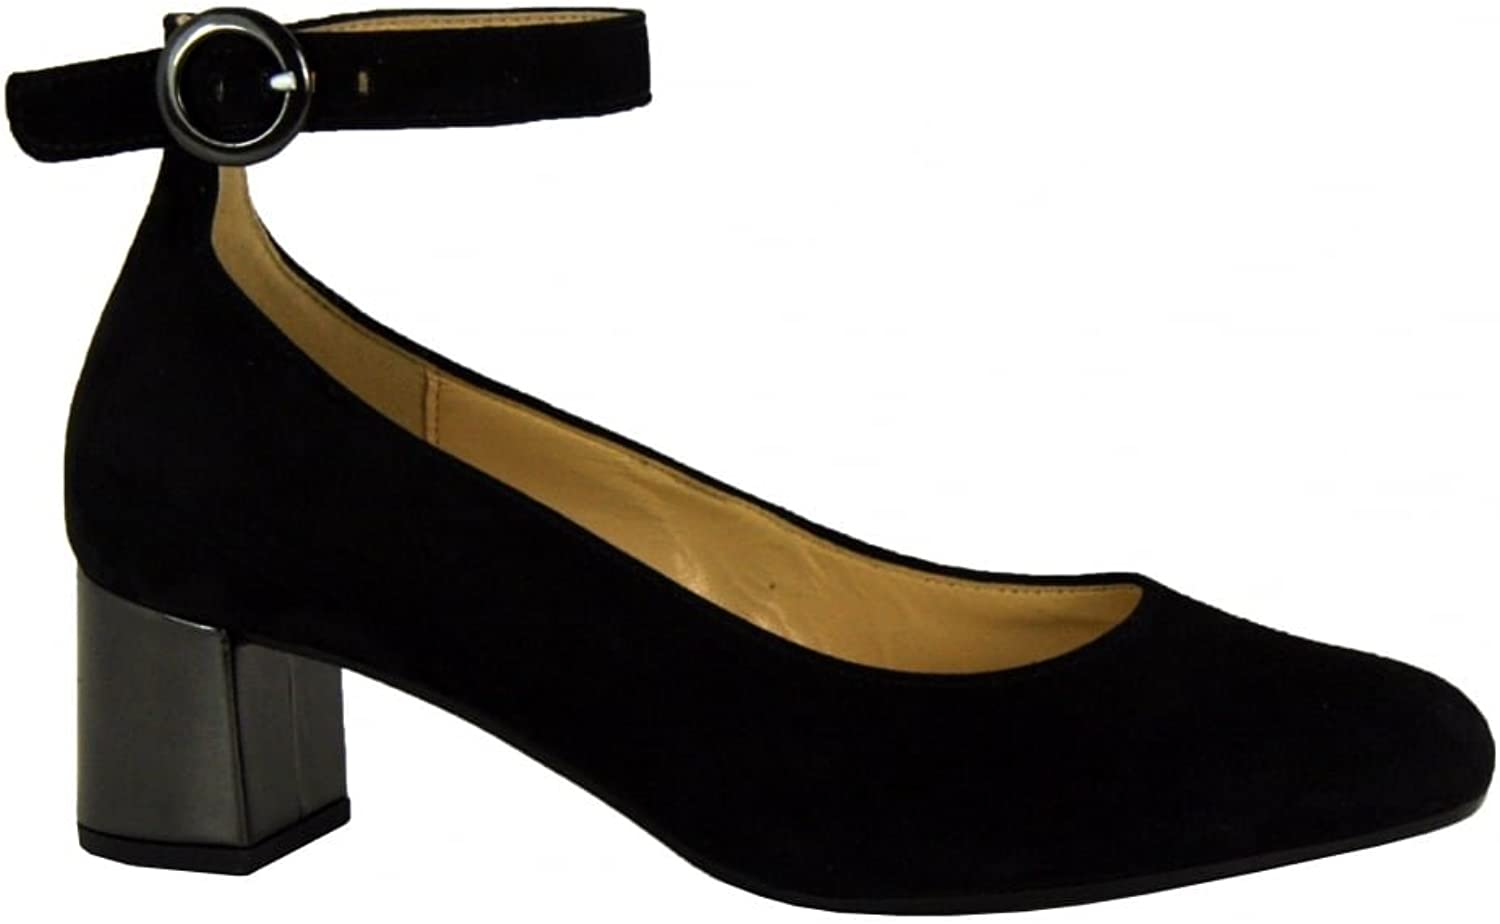 CARNELL GABOR schuhe schuhe WITH ANKLE STRAP  authentisch